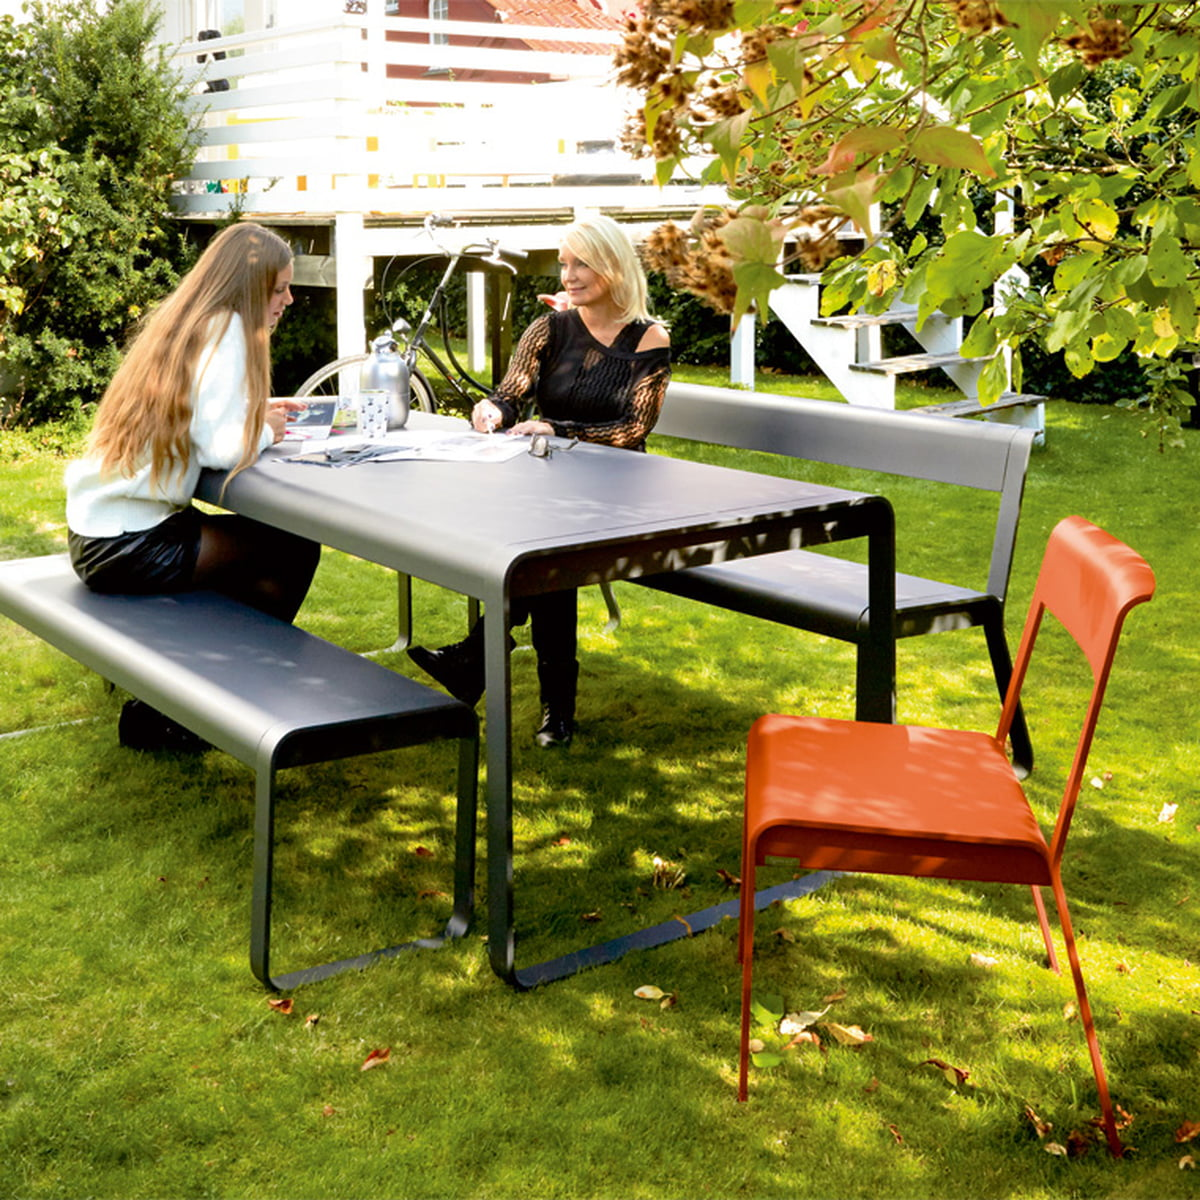 Charmant Bellevie Chair, Bench, Table And Bench With Backrest For Outdoor Use